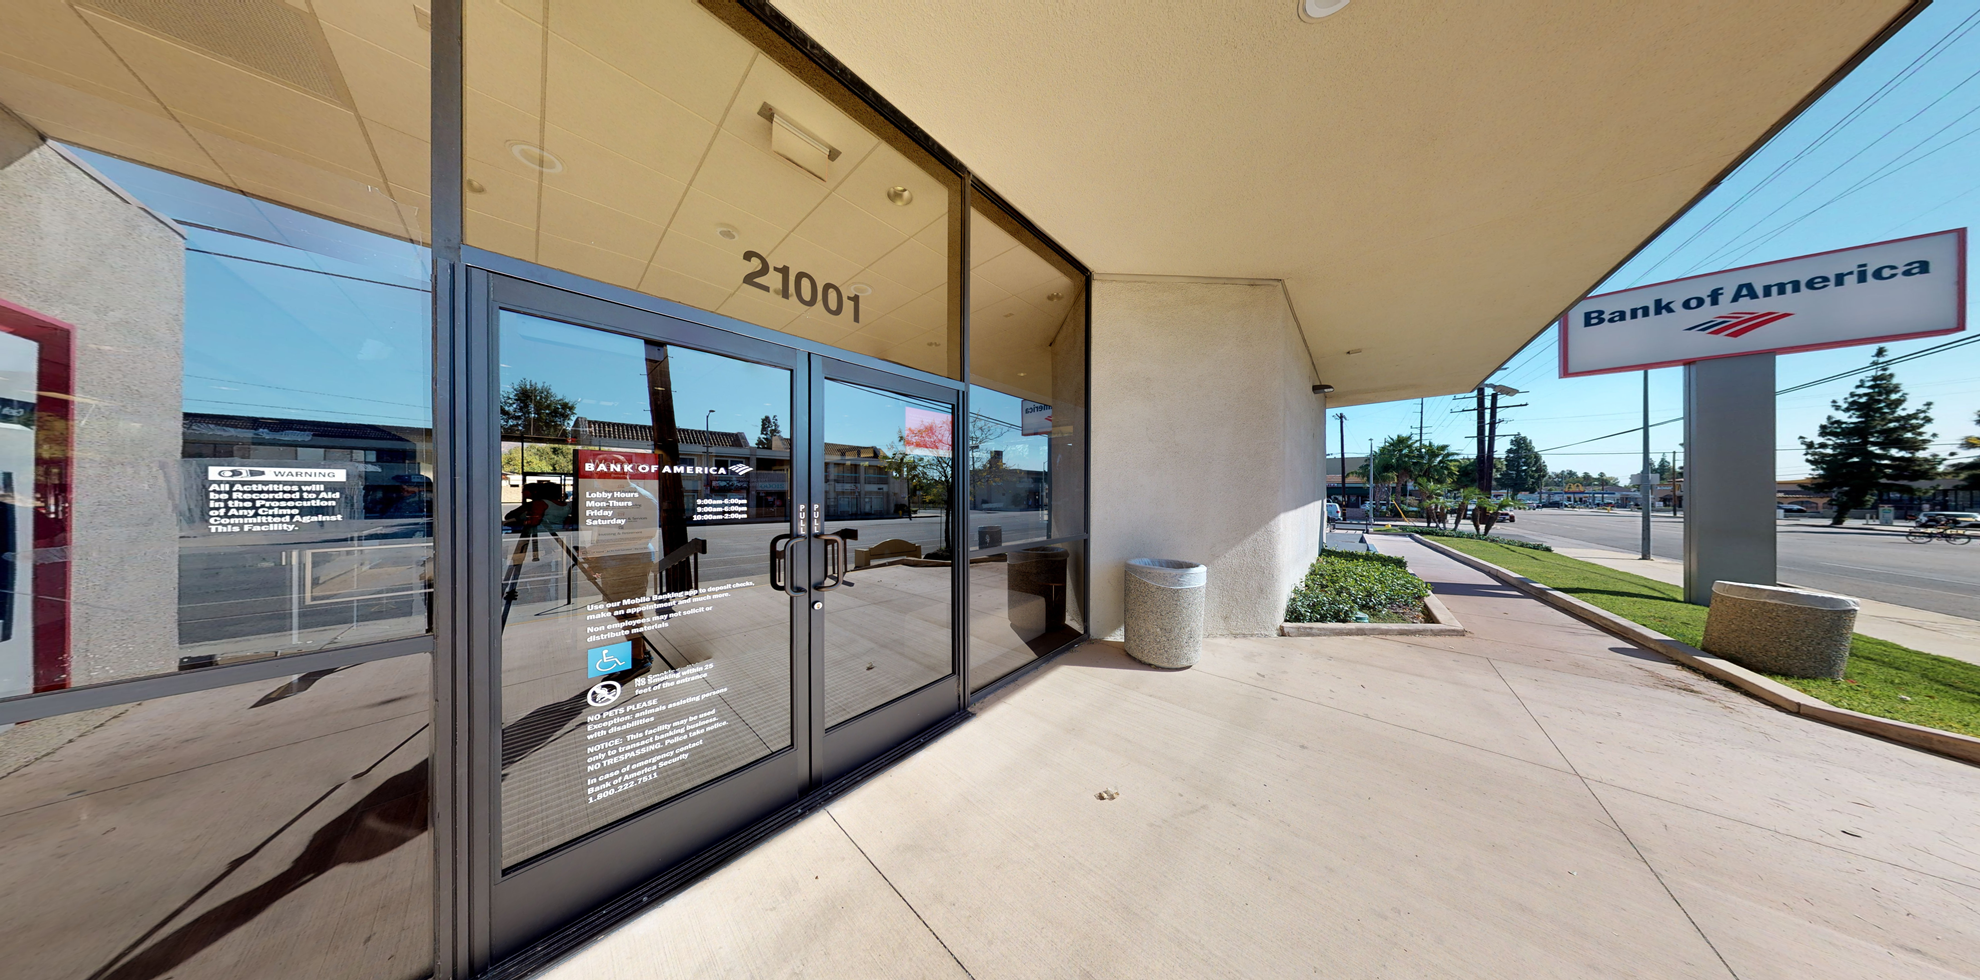 Bank of America financial center with drive-thru ATM   21001 Devonshire St, Chatsworth, CA 91311